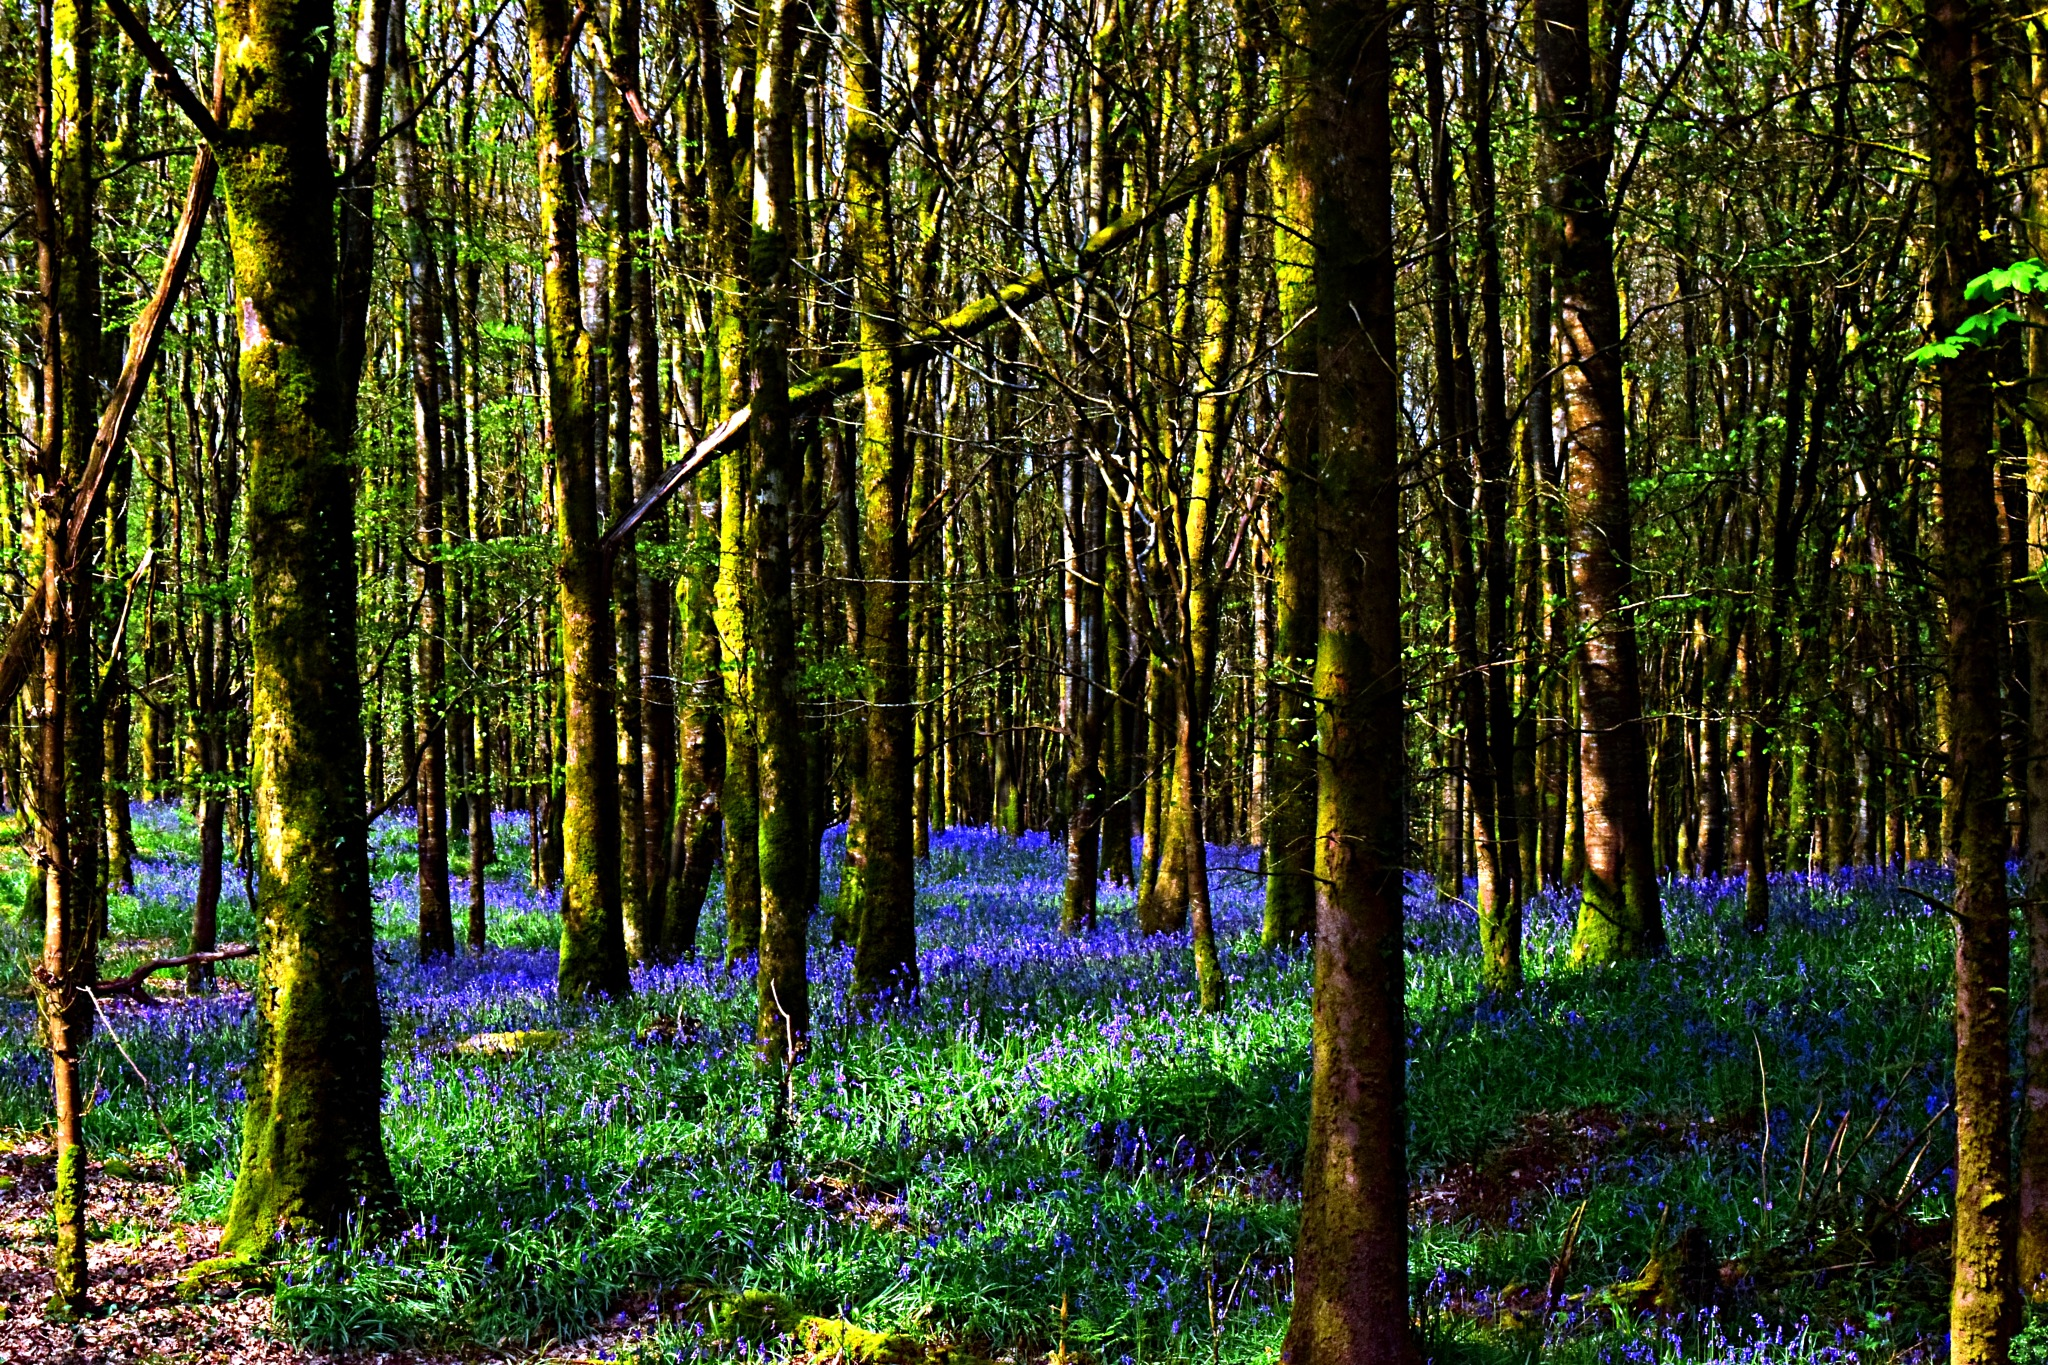 Bluebells 1 by Kenny Francis